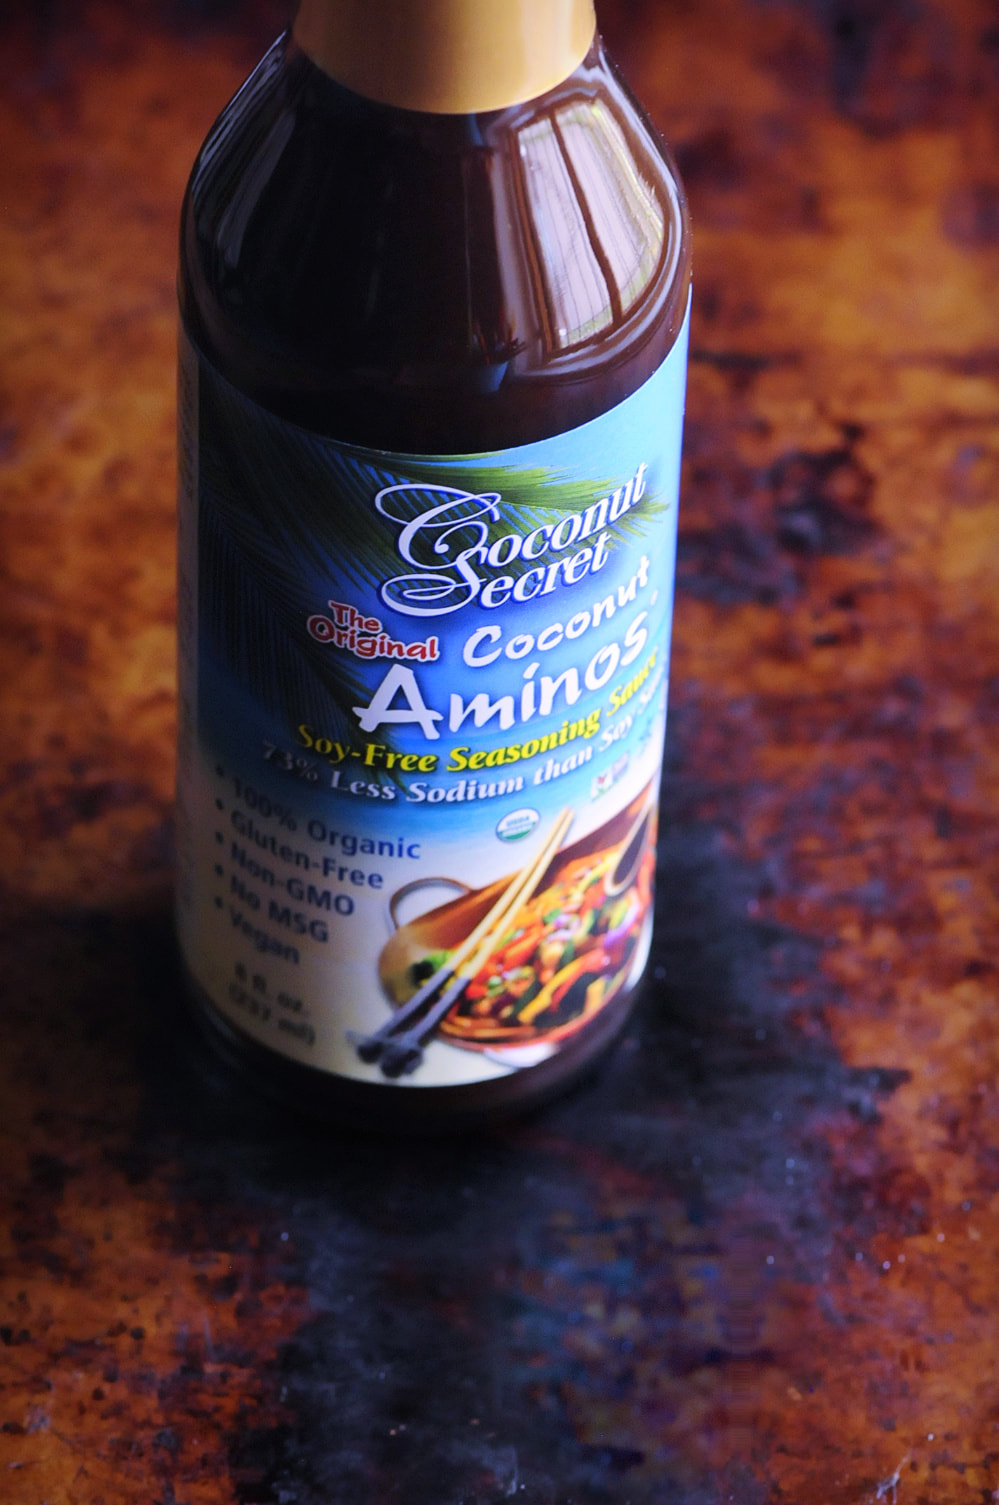 Review: Coconut Secret Coconut Aminos - A product review of Coconut Secret's The Original Coconut Aminos. | #coconut #coconutsecret #coconutaminos #aminos #sauce #dip #condiment #healthy #vegan #organic #review #productreview